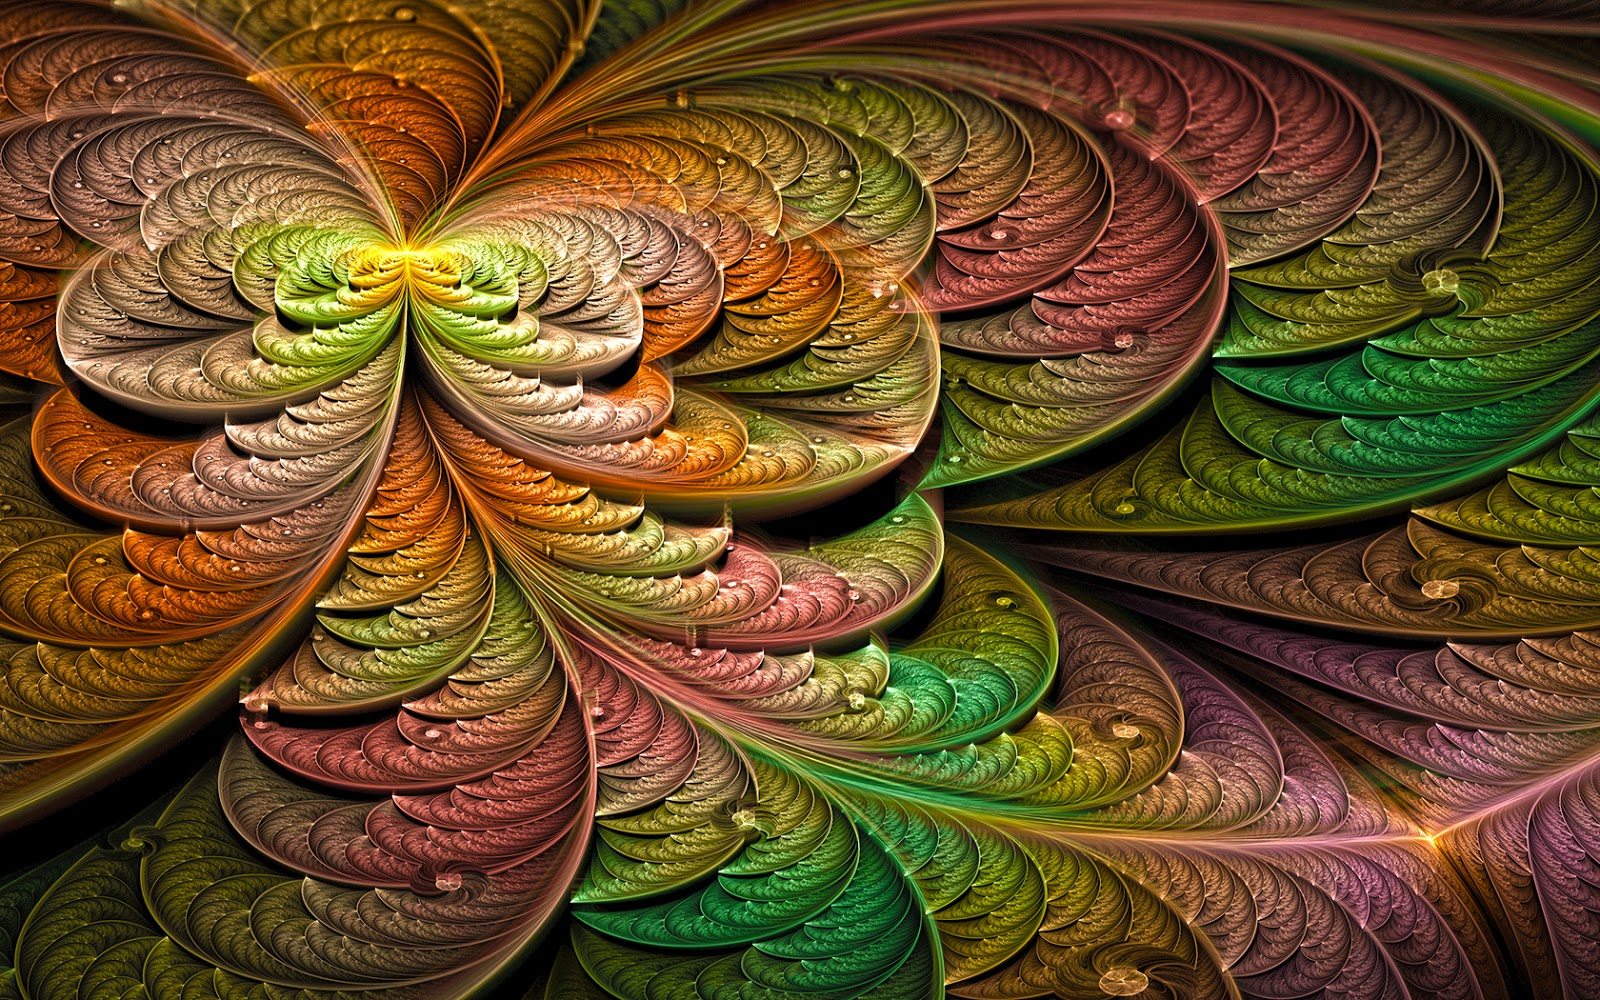 Abstract-fractal-texture-background-HD-image.jpg